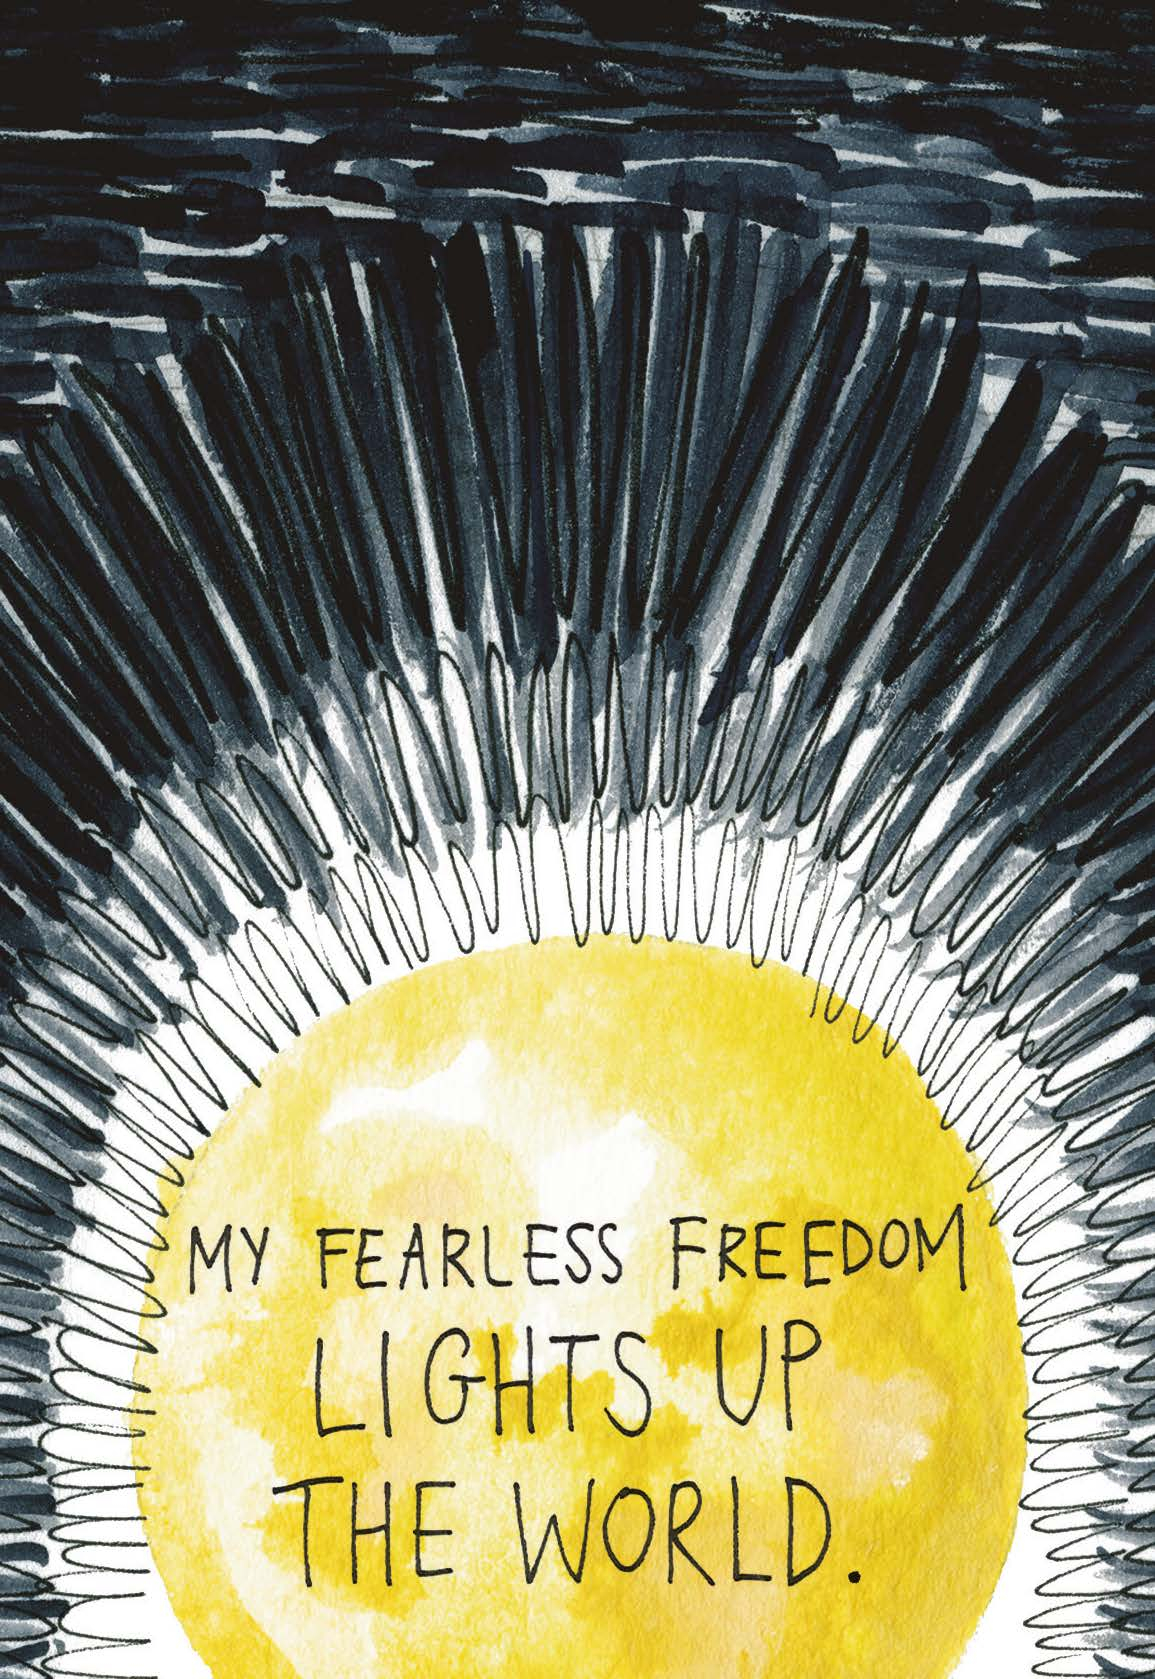 My Fearless Freedom Lights Up the World | Gabby Bernstein | The universe has your back card deck